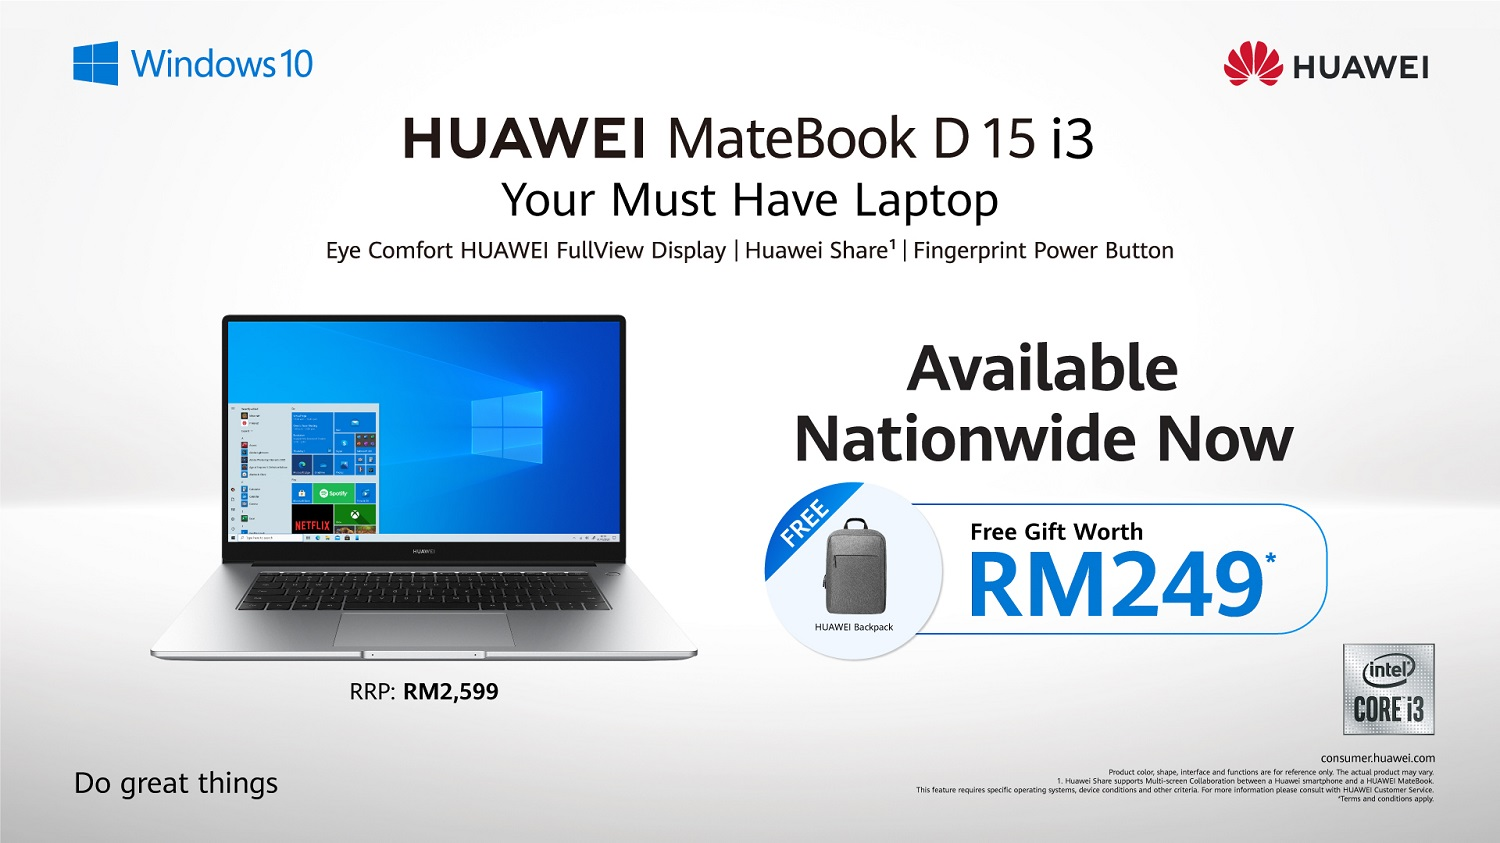 Save More With The HUAWEI MateBook D15 i3 And Receive Freebies Worth Up To RM249